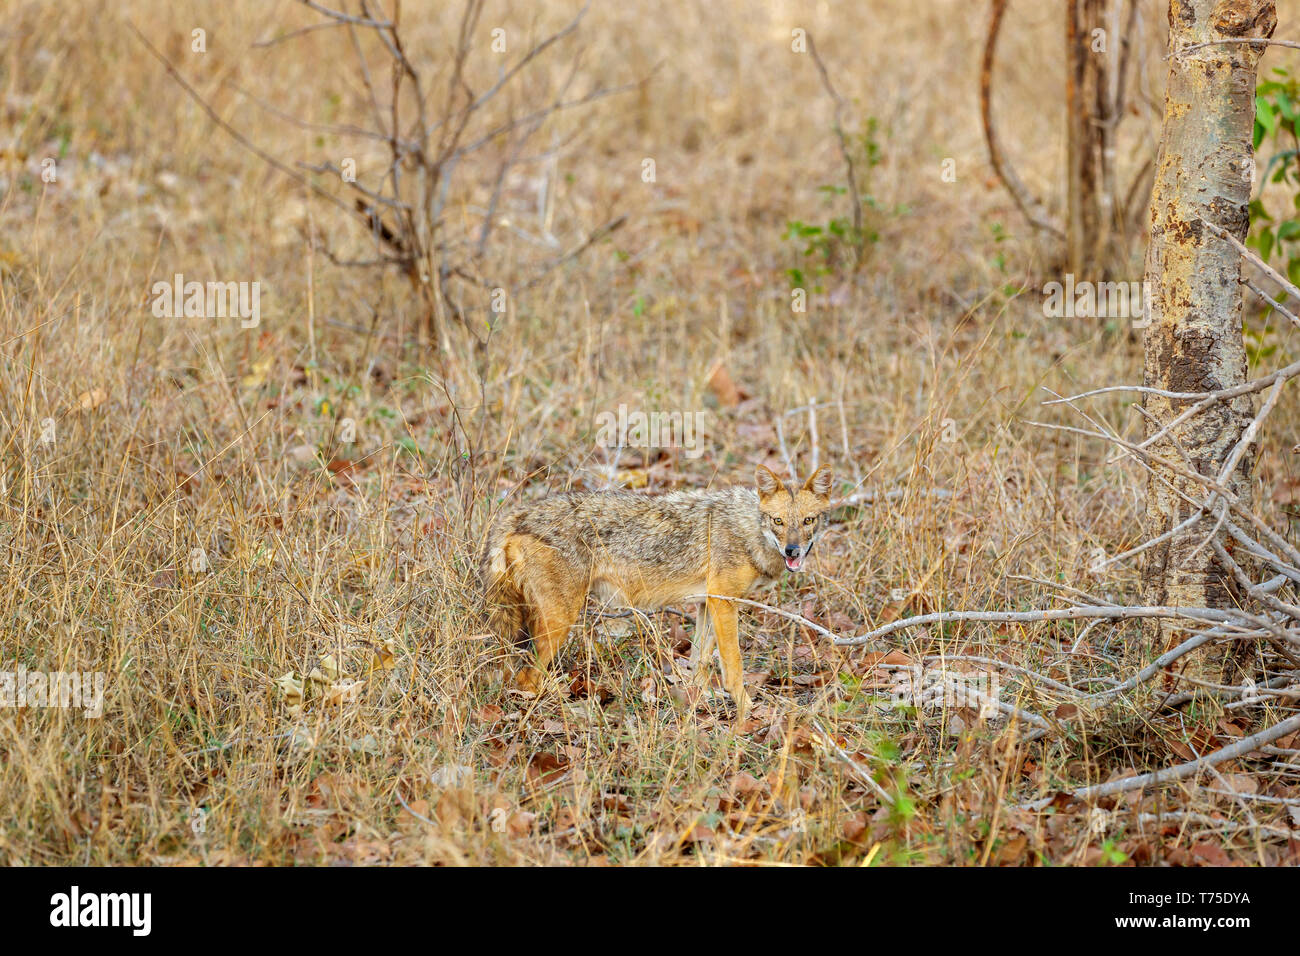 Golden jackal (Canis aureus) standing in ling grass, Bandhavgarh National Park in the Umaria district of the central Indian state of Madhya Pradesh - Stock Image